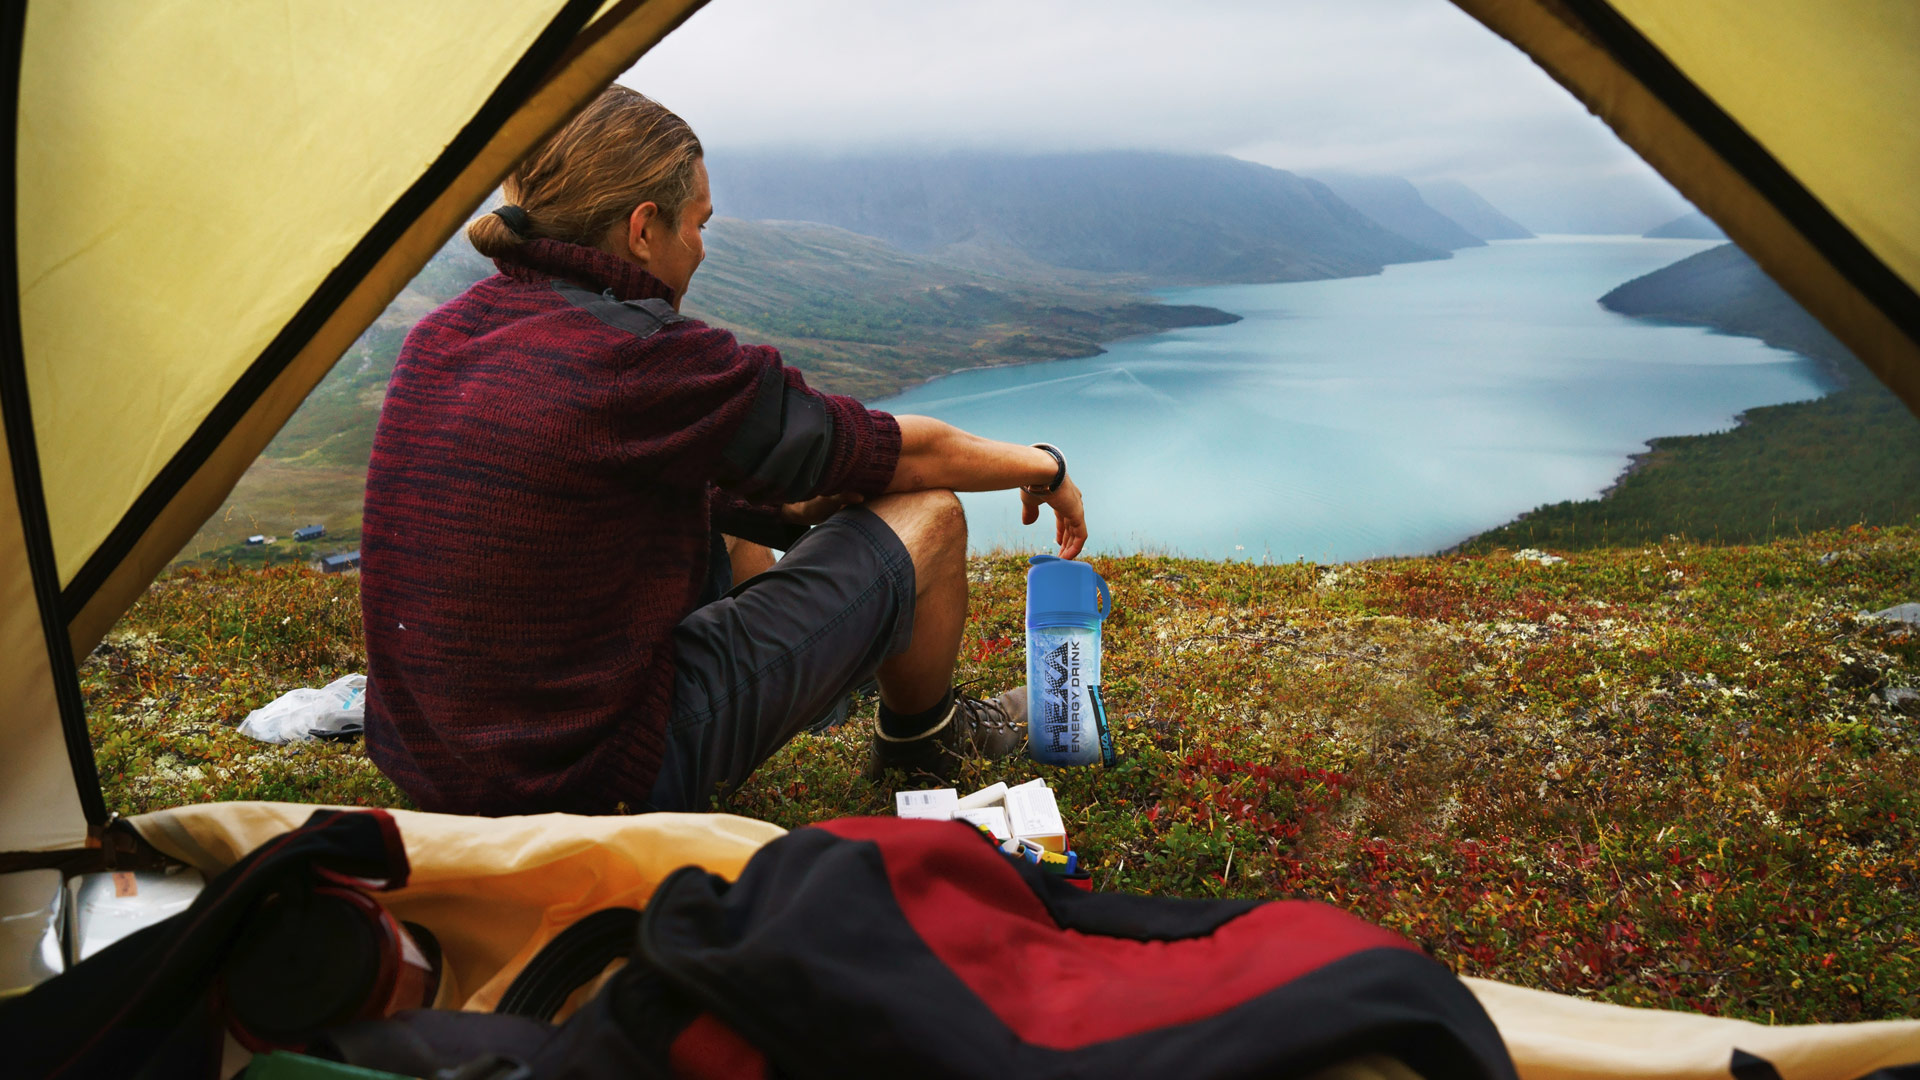 camping with heka energy drink